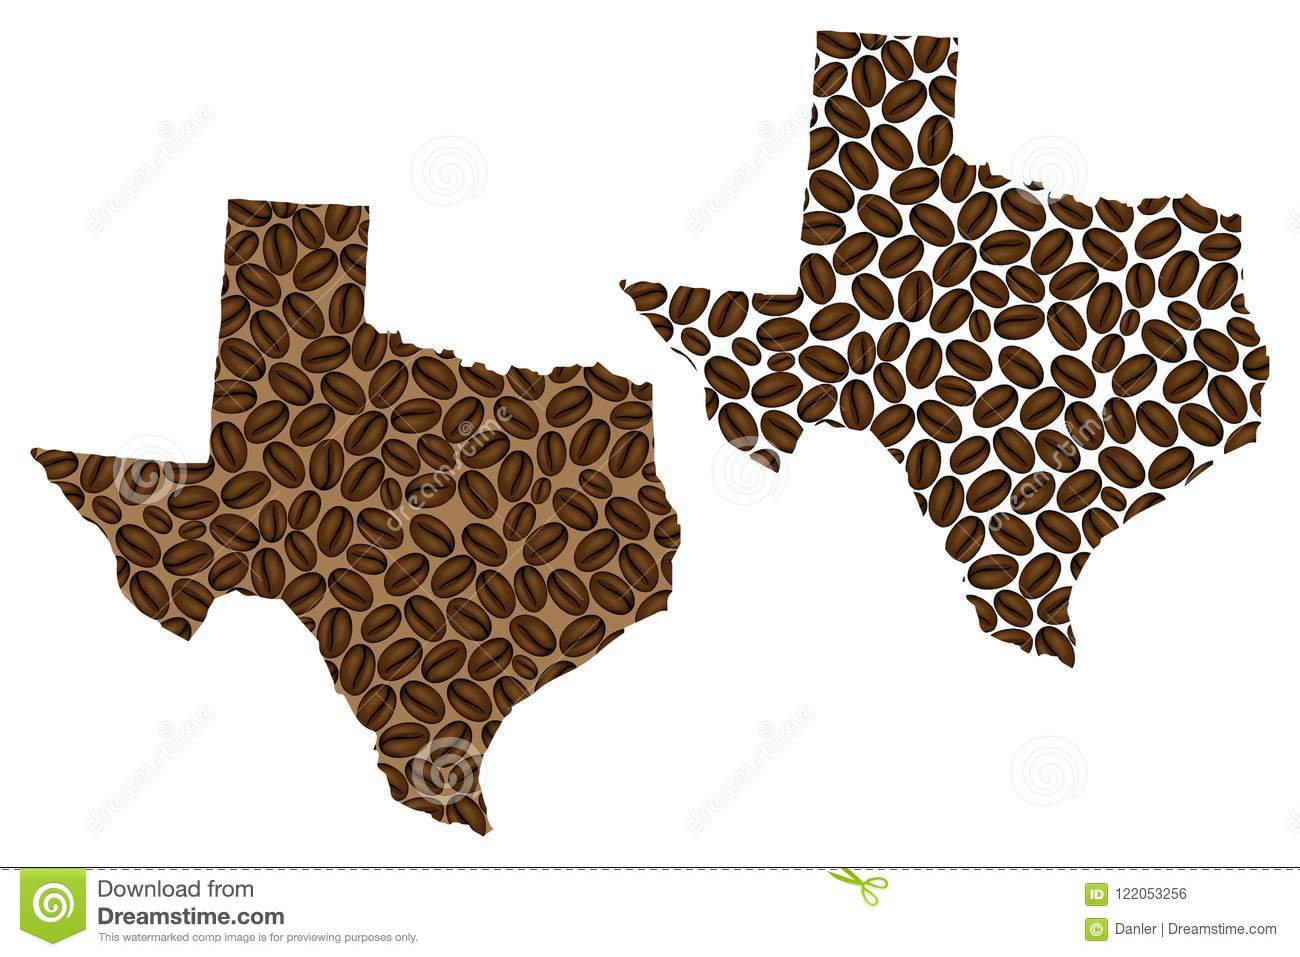 Texas - mapa do feijão de café